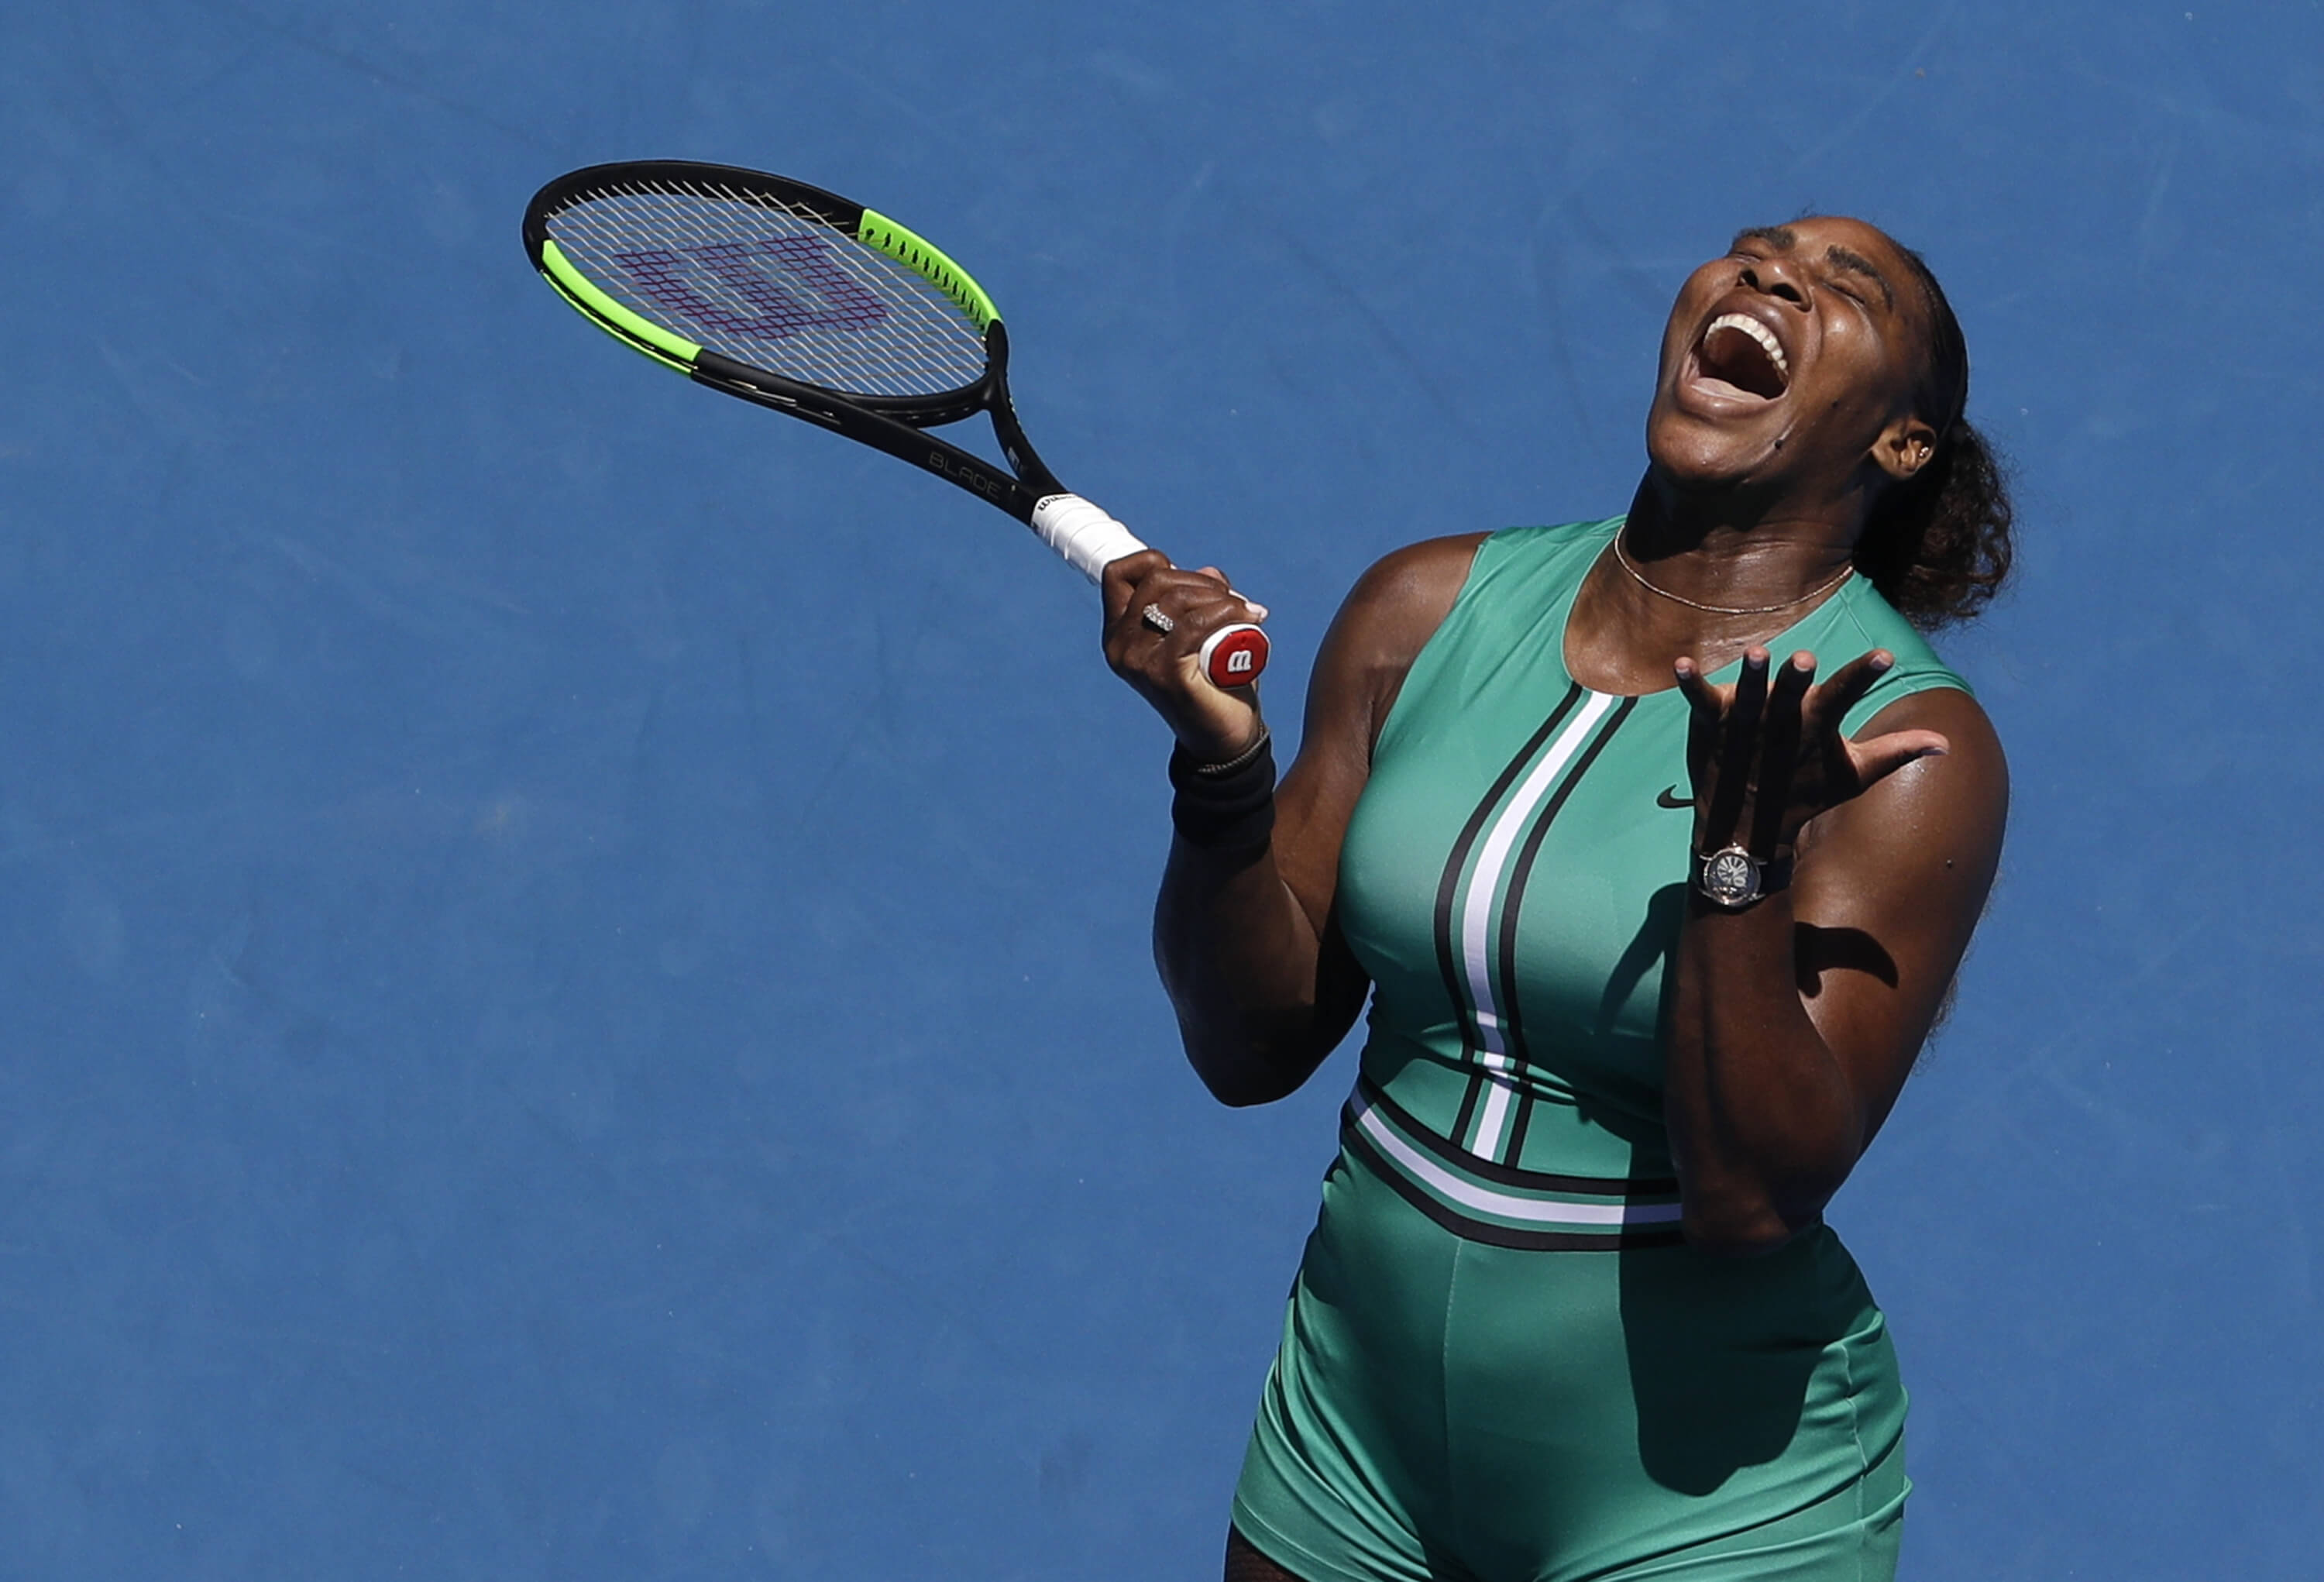 Serena Williams reacts after losing a point to Karolina Pliskova during their quarterfinal match Wednesday at the Australian Open tennis championships in Melbourne.